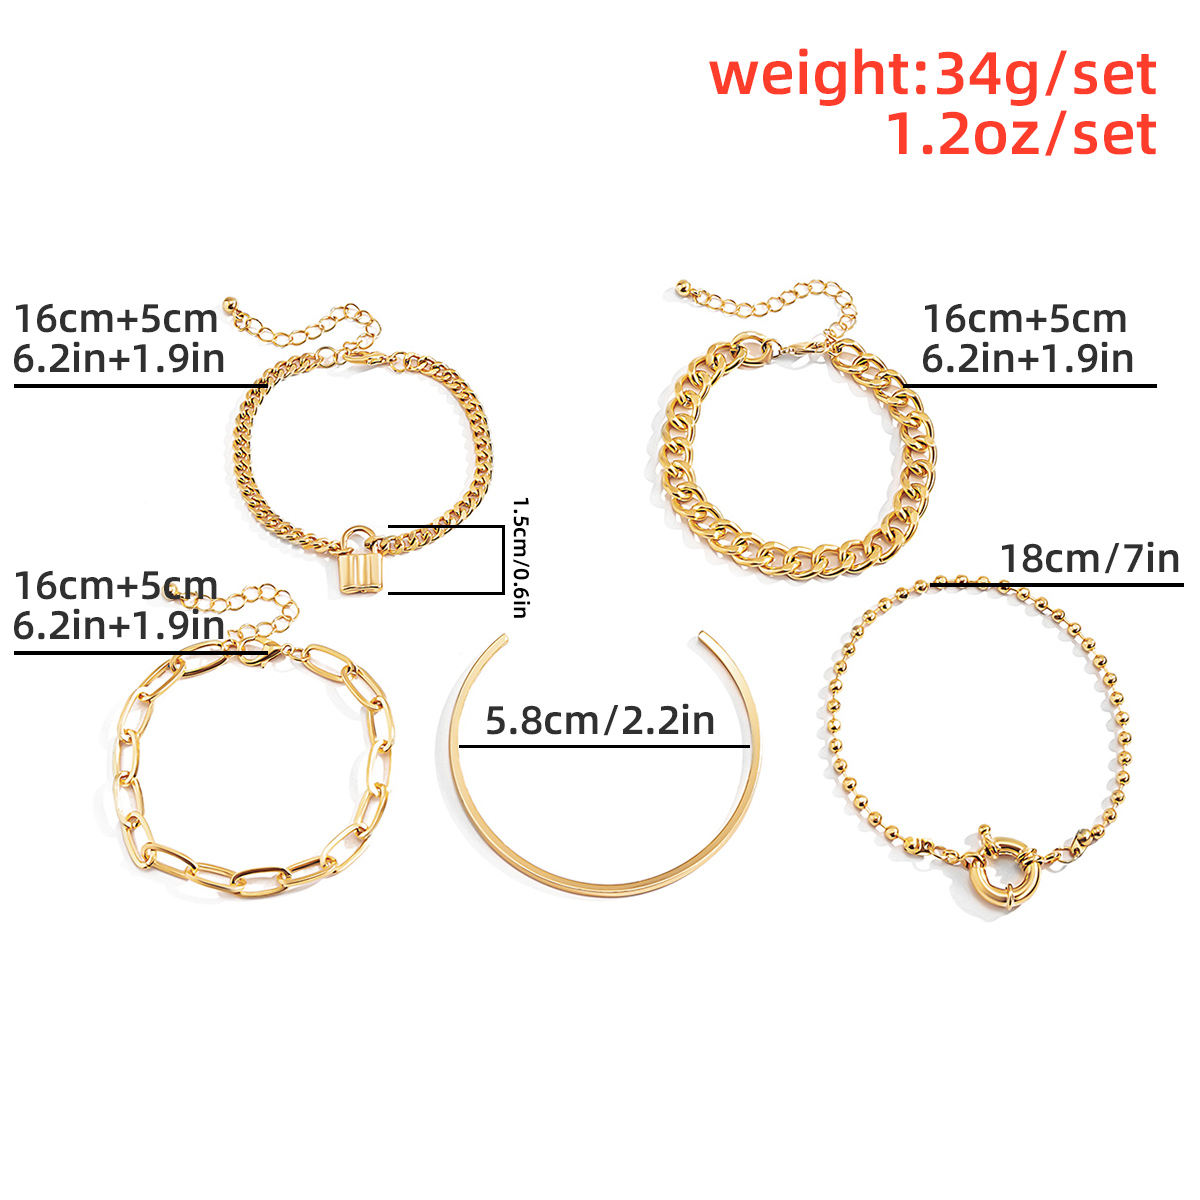 PuRui 5PCS/set Multilayer Gold Color Chain Bracelets & Bangles for Women Men Lock Chunky Bracelet Couples Boho Jewelry Gift